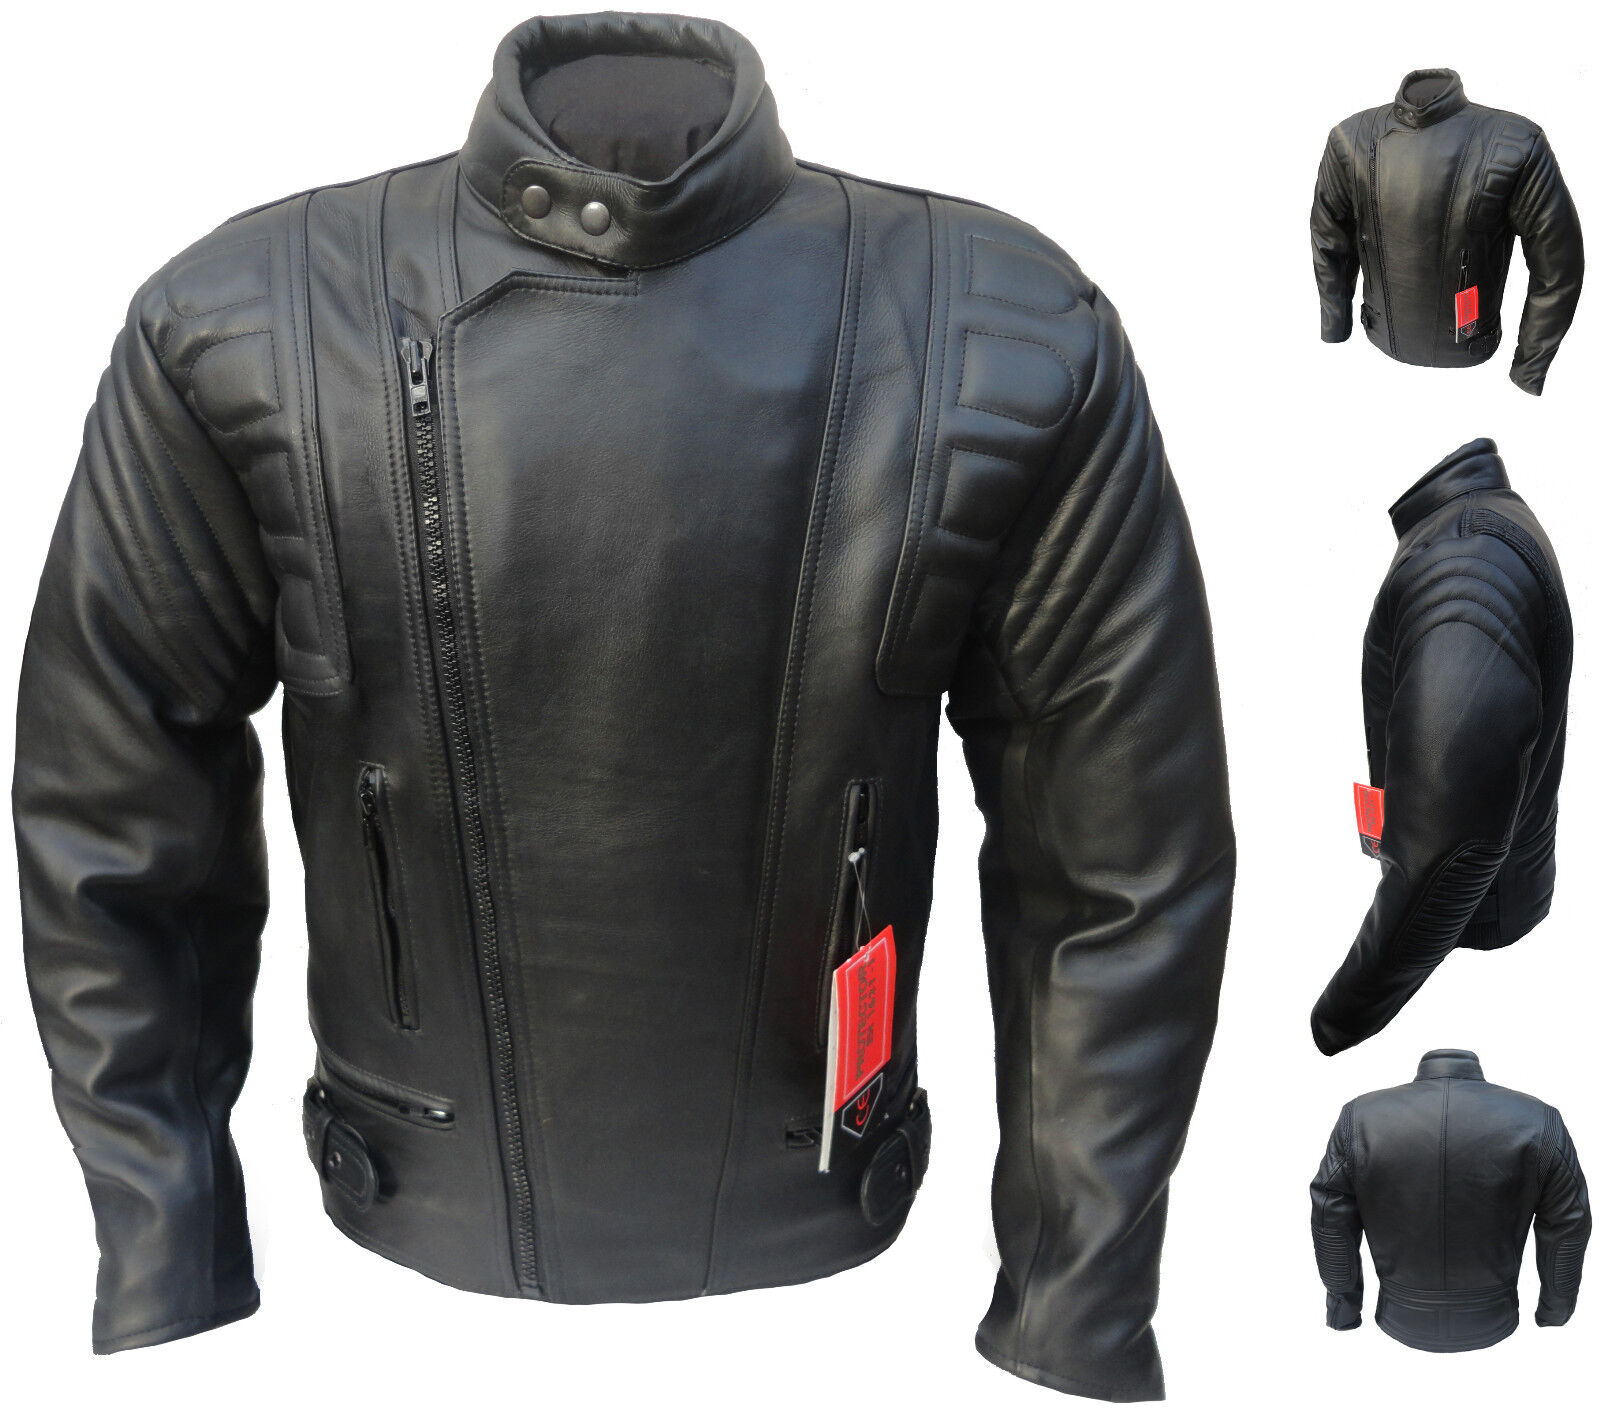 Leather jacket accessories